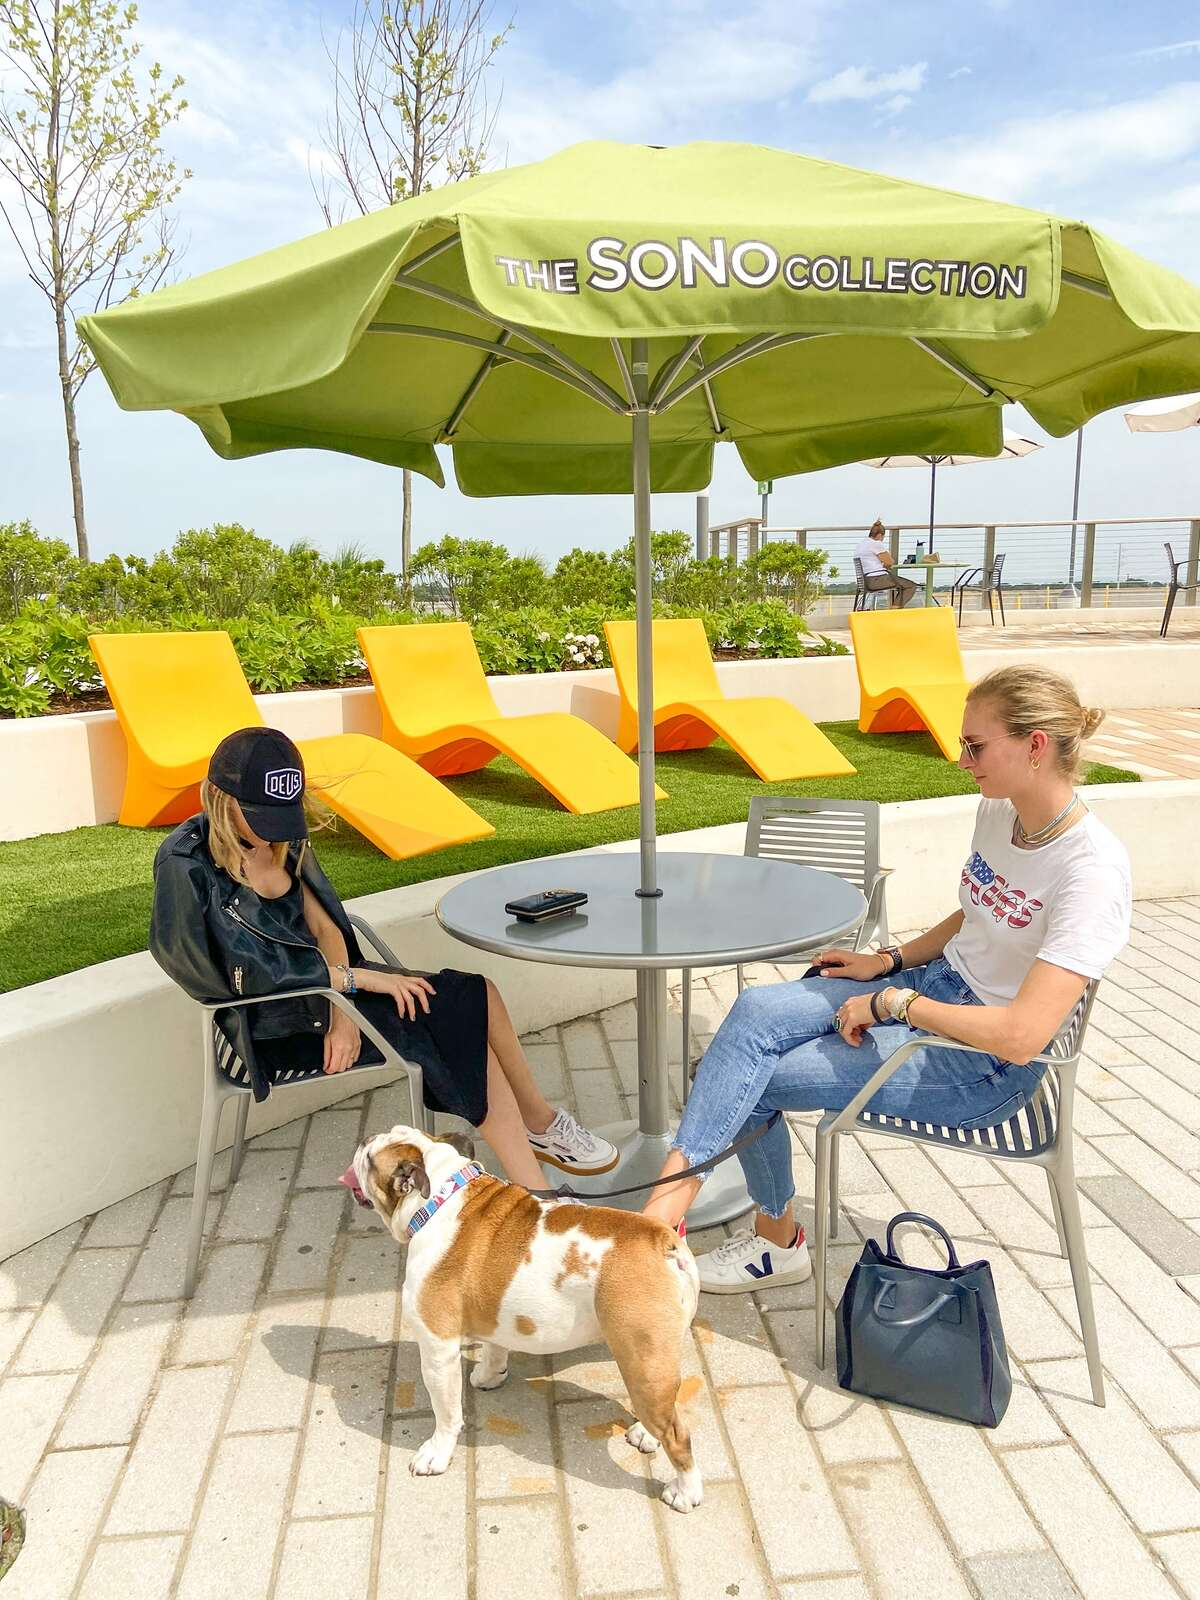 The SoNo Collection hosts The Pup Brunch from May to August.